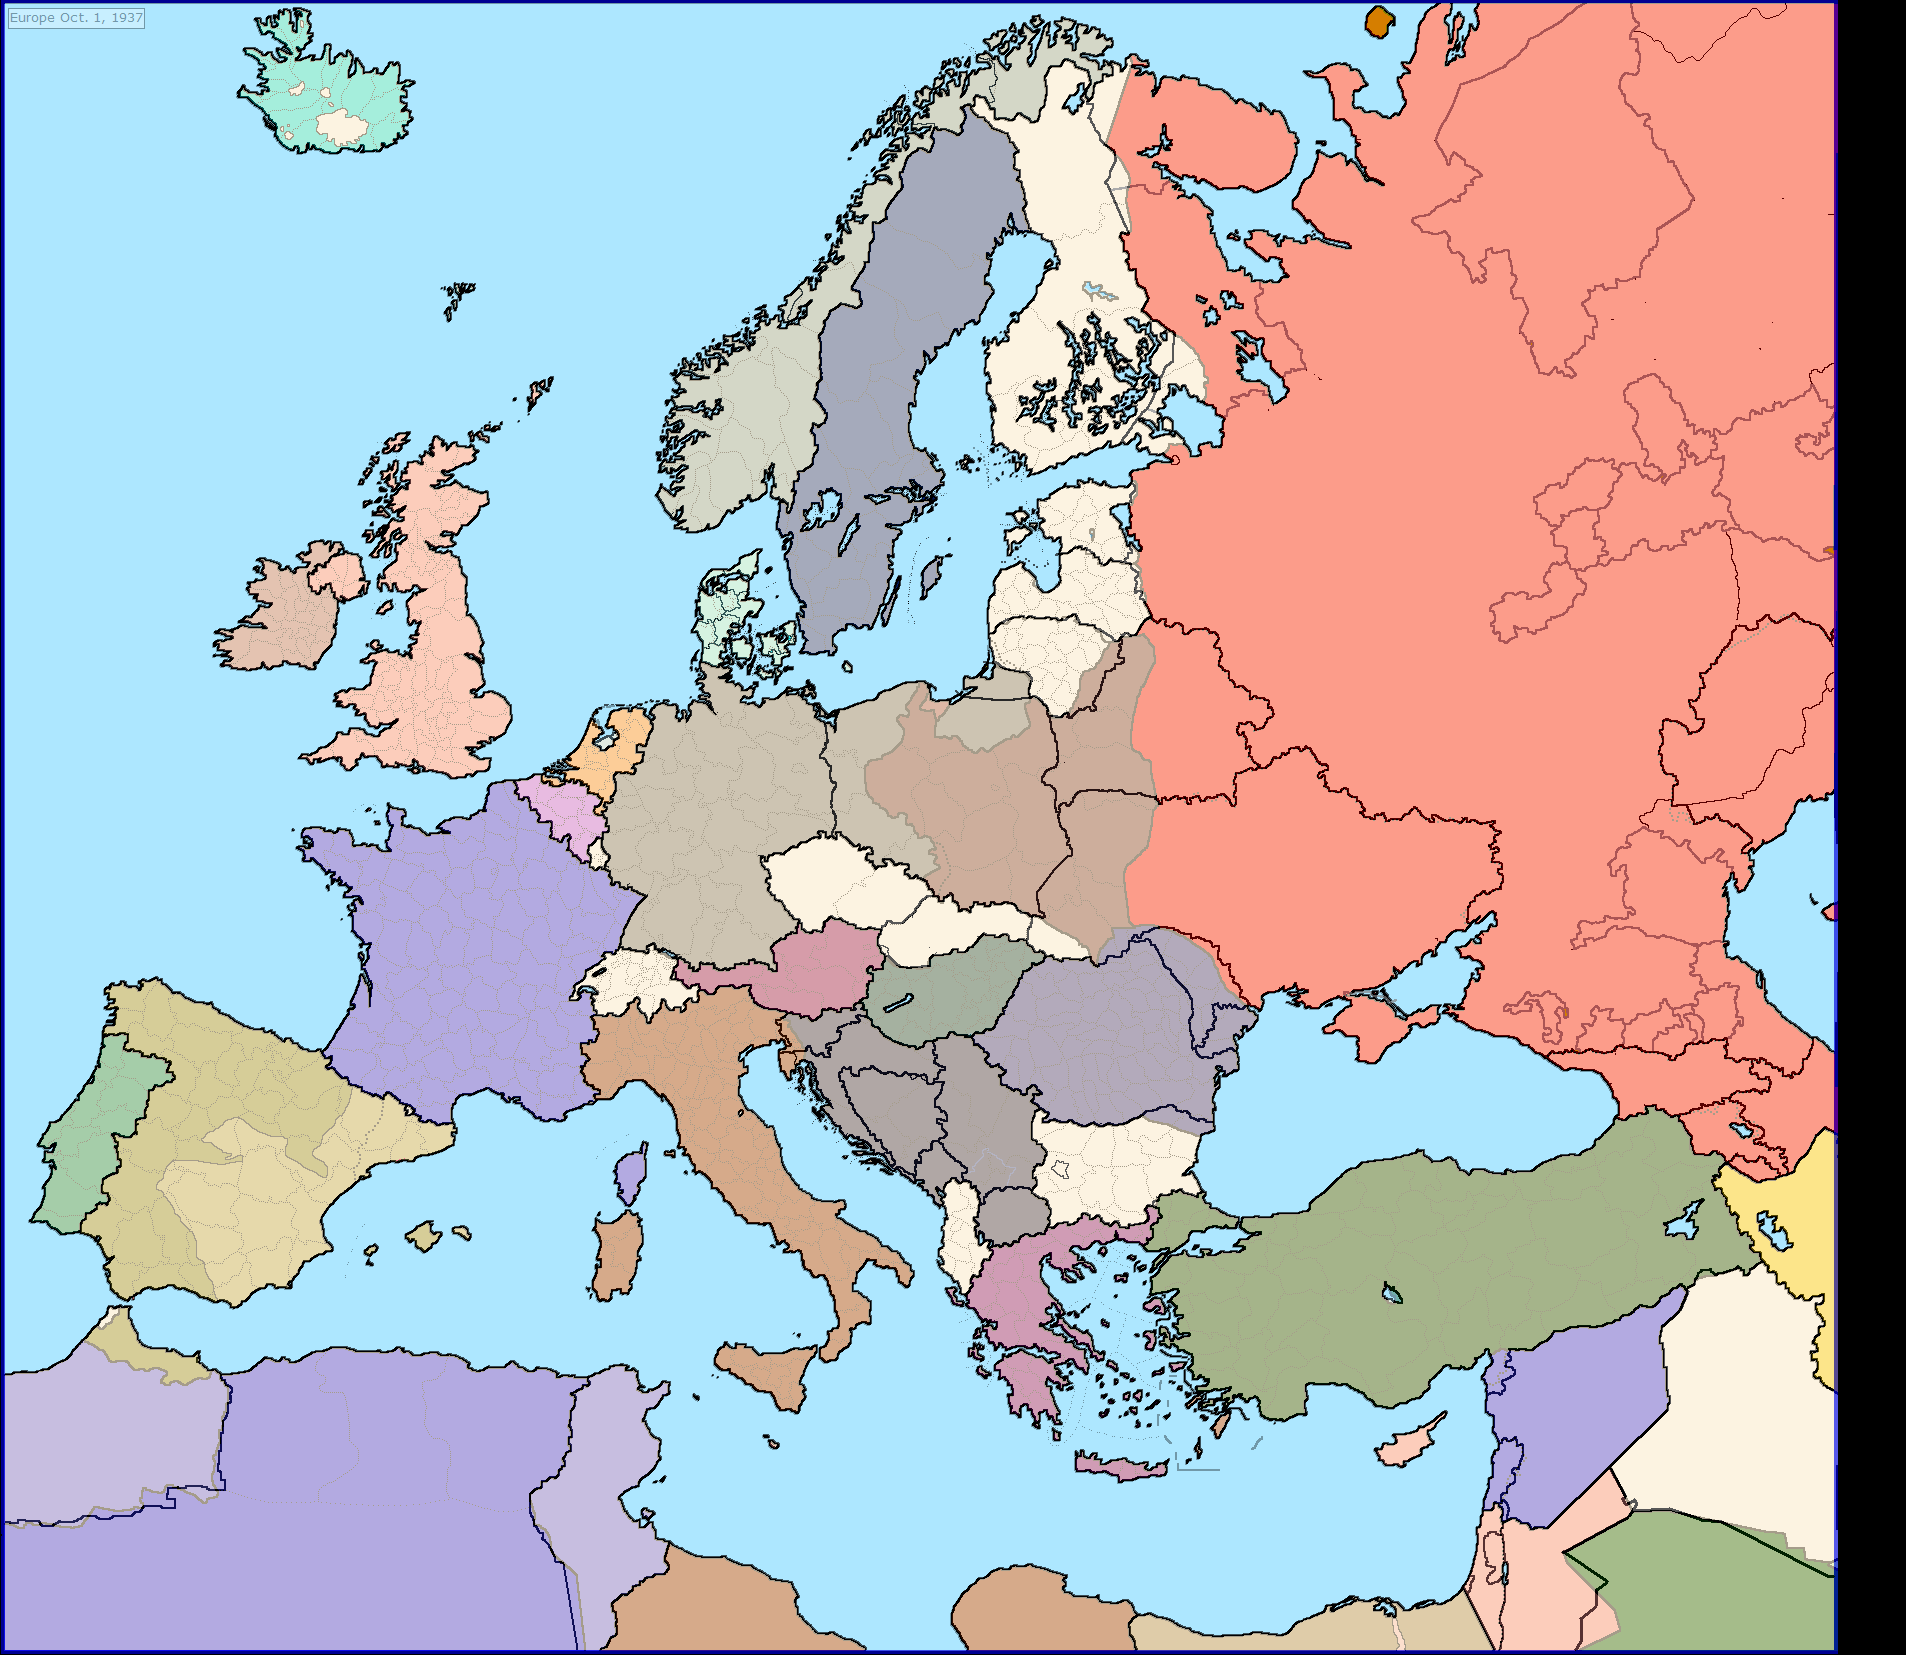 Present days borders over 1937s countries centered on Europe